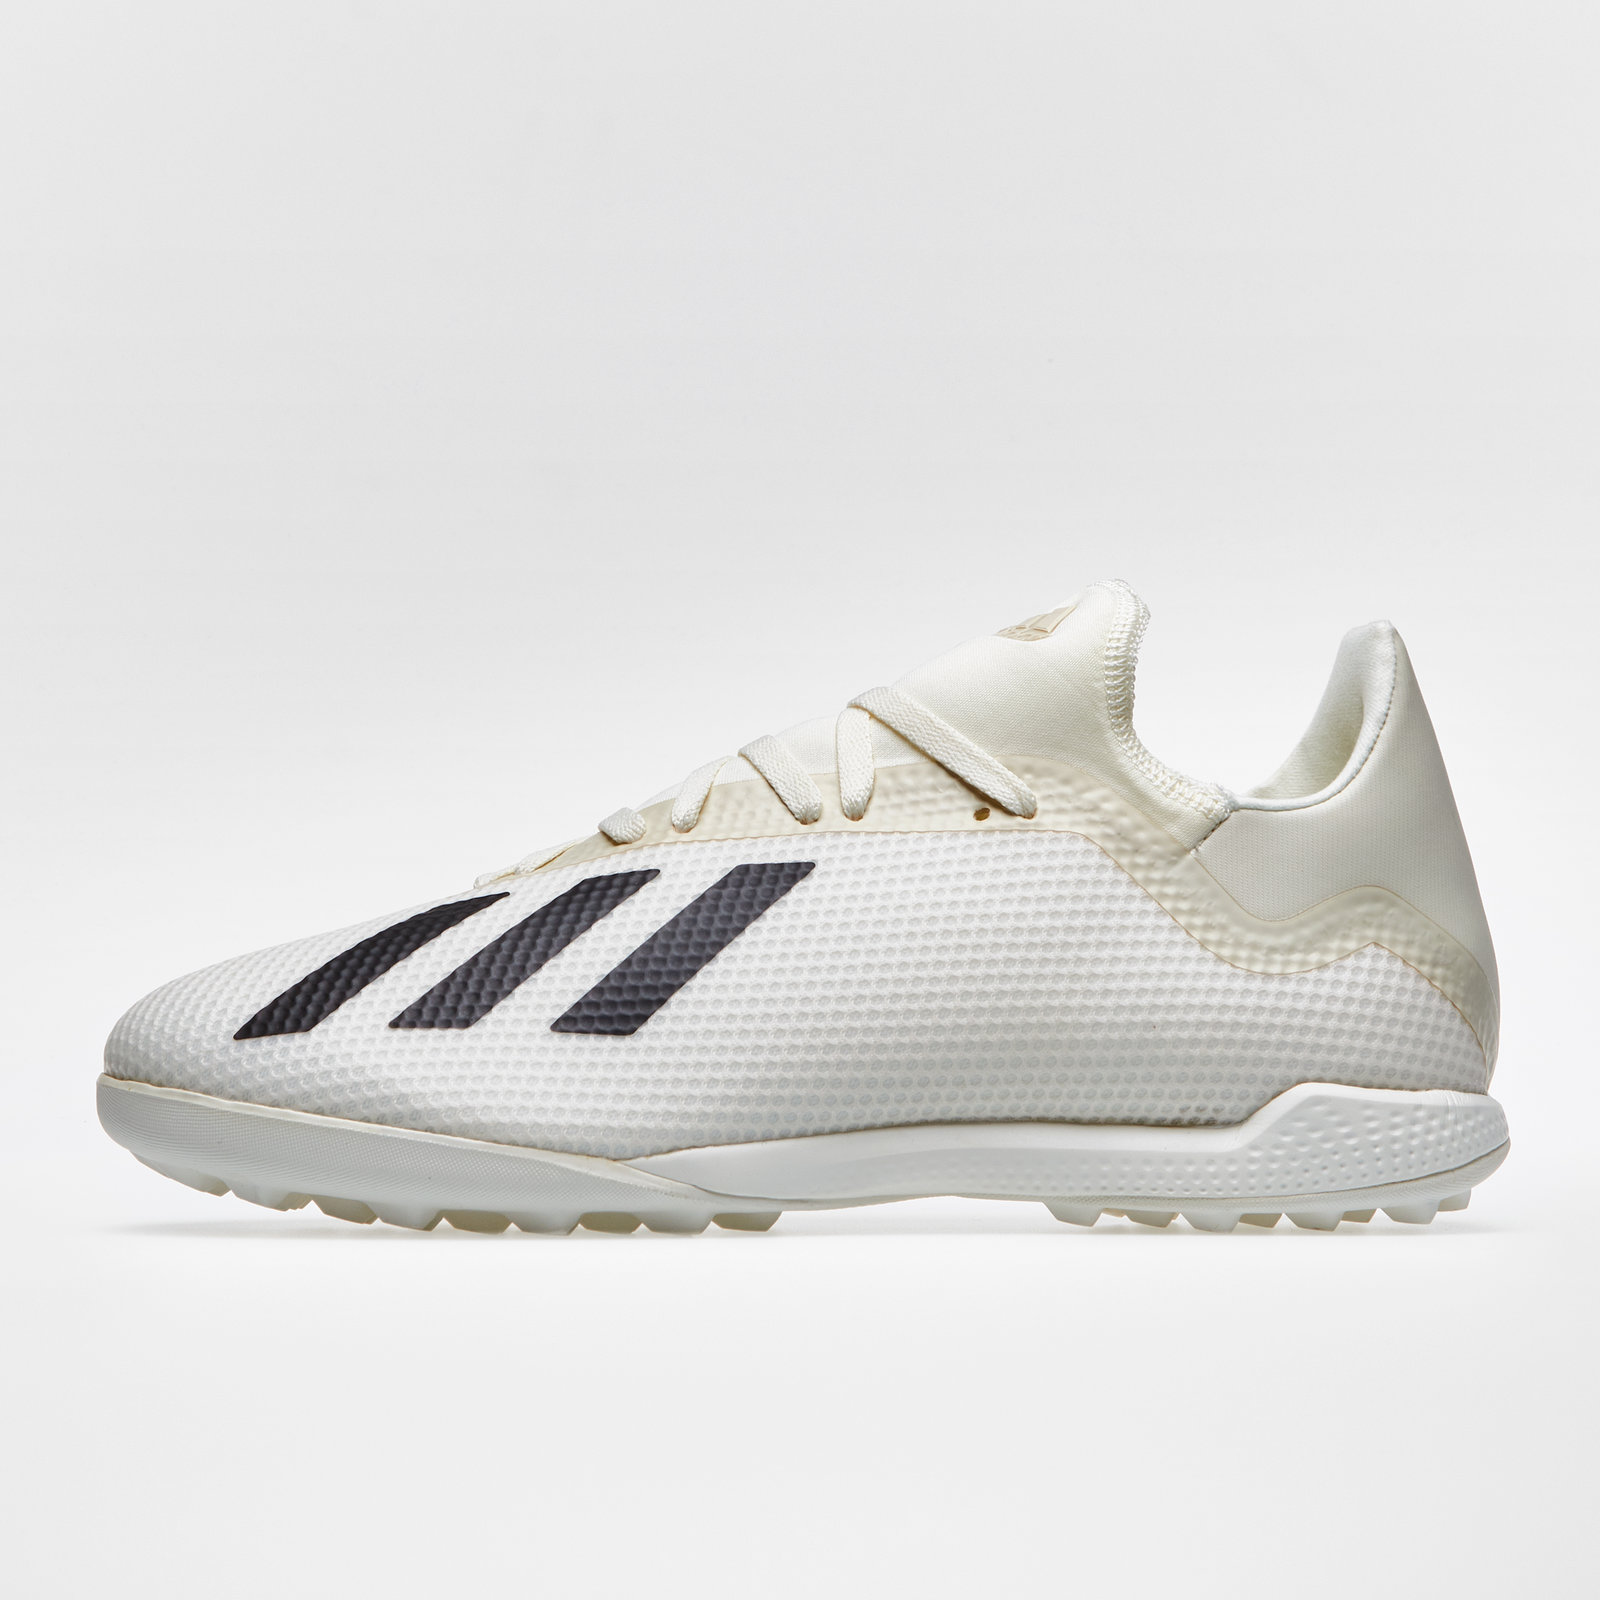 2bd2a1f7682c1 adidas Mens X Tango 18.3 TF Football Boots Studs Trainers Sports Shoes White